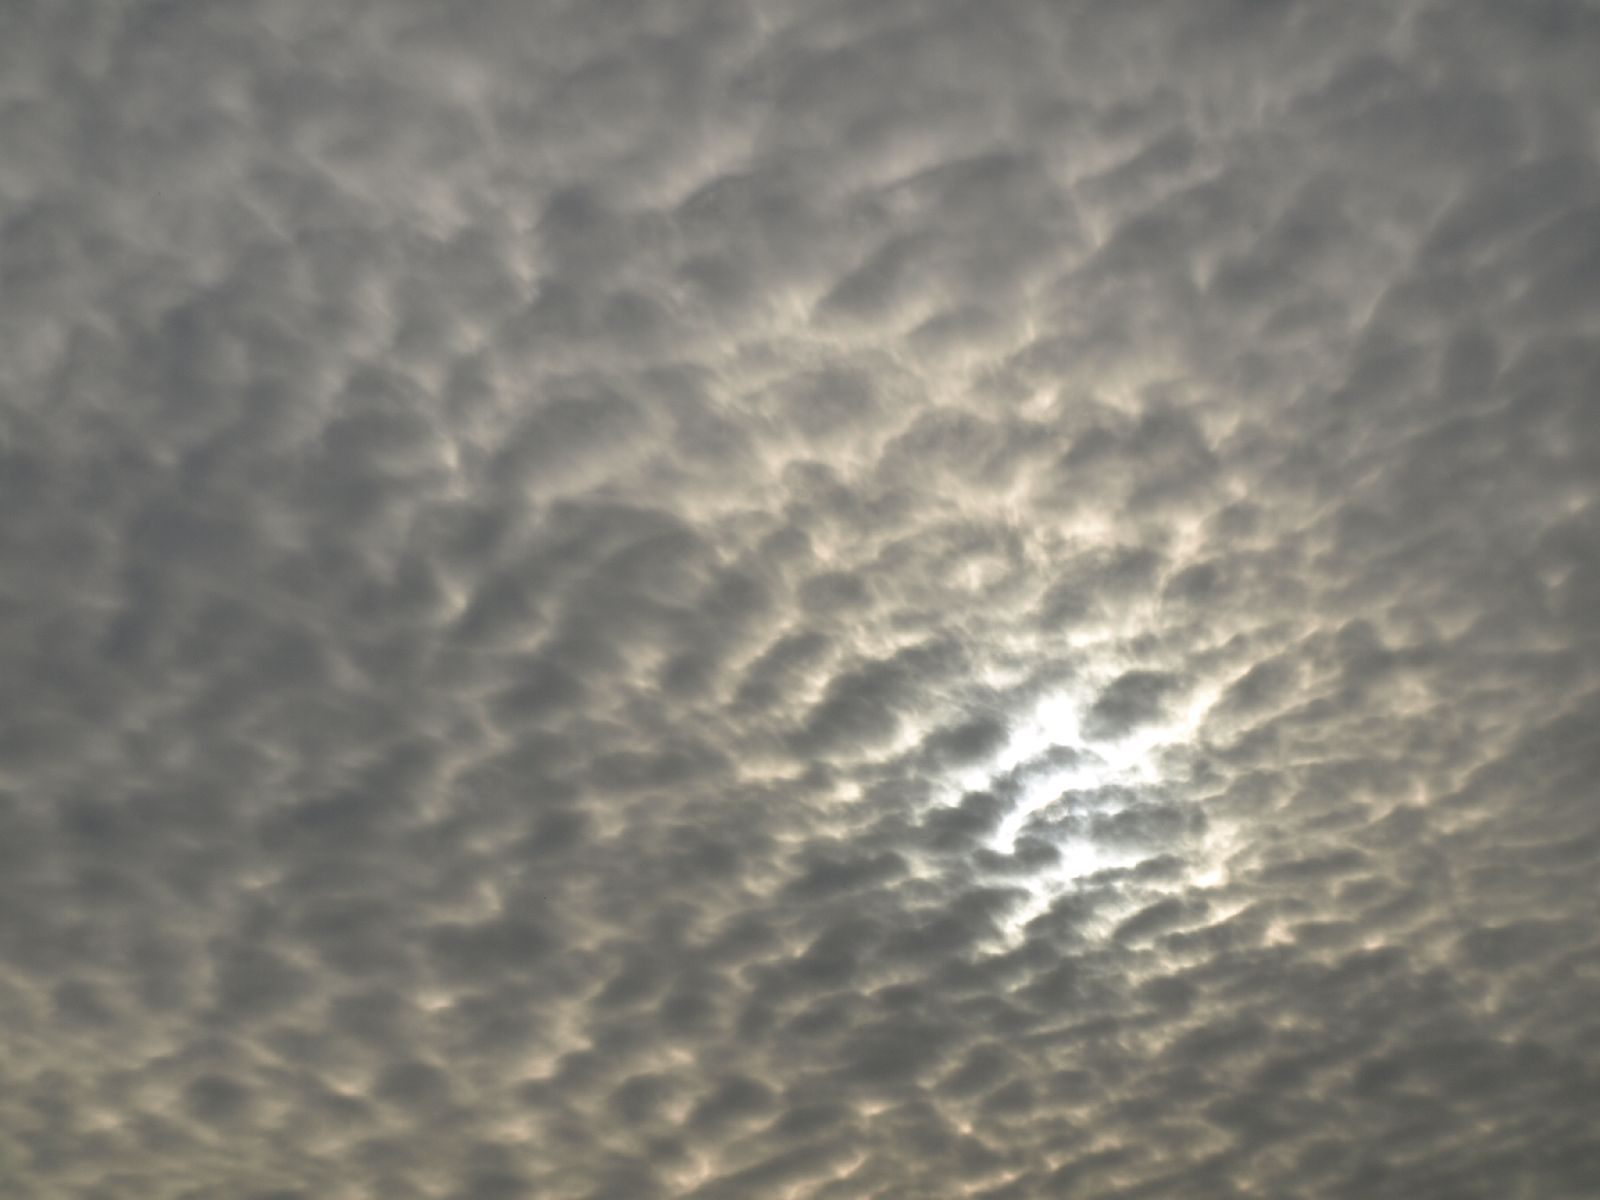 Sky_Clouds_Photo_Texture_A_P9195160